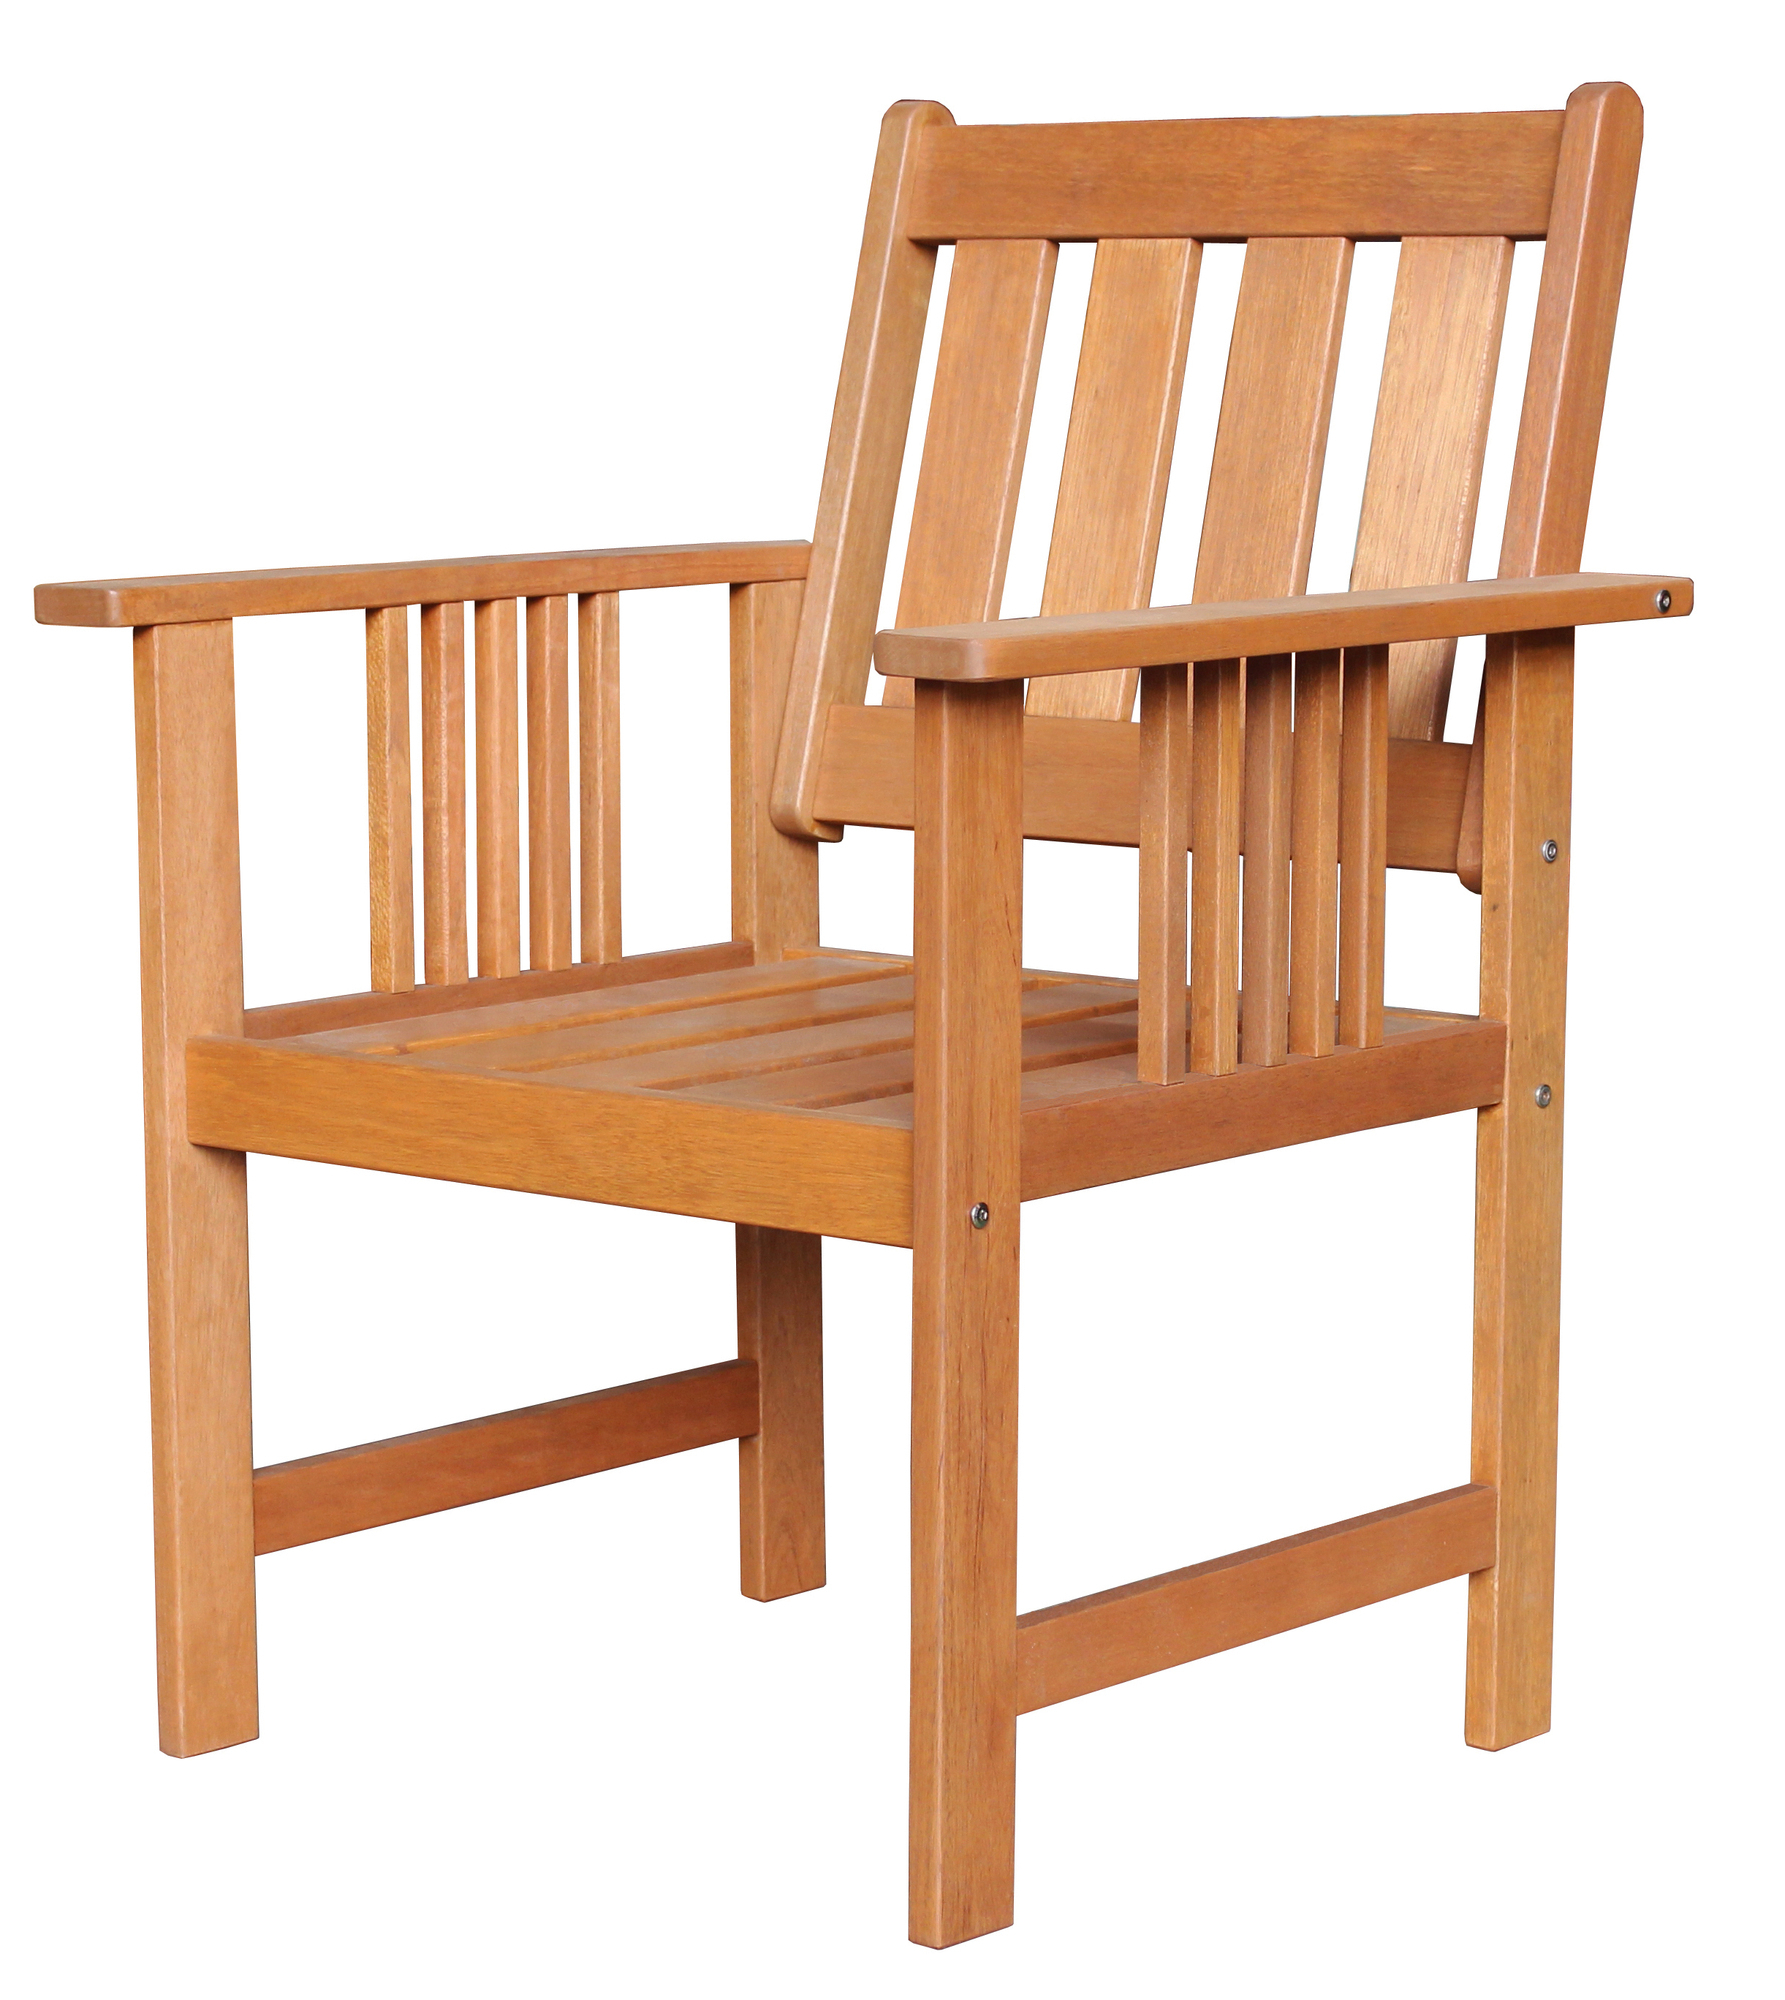 Natural Avoca Wood Outdoor Armchair Throughout Favorite Avoca Wood Garden Benches (View 5 of 30)